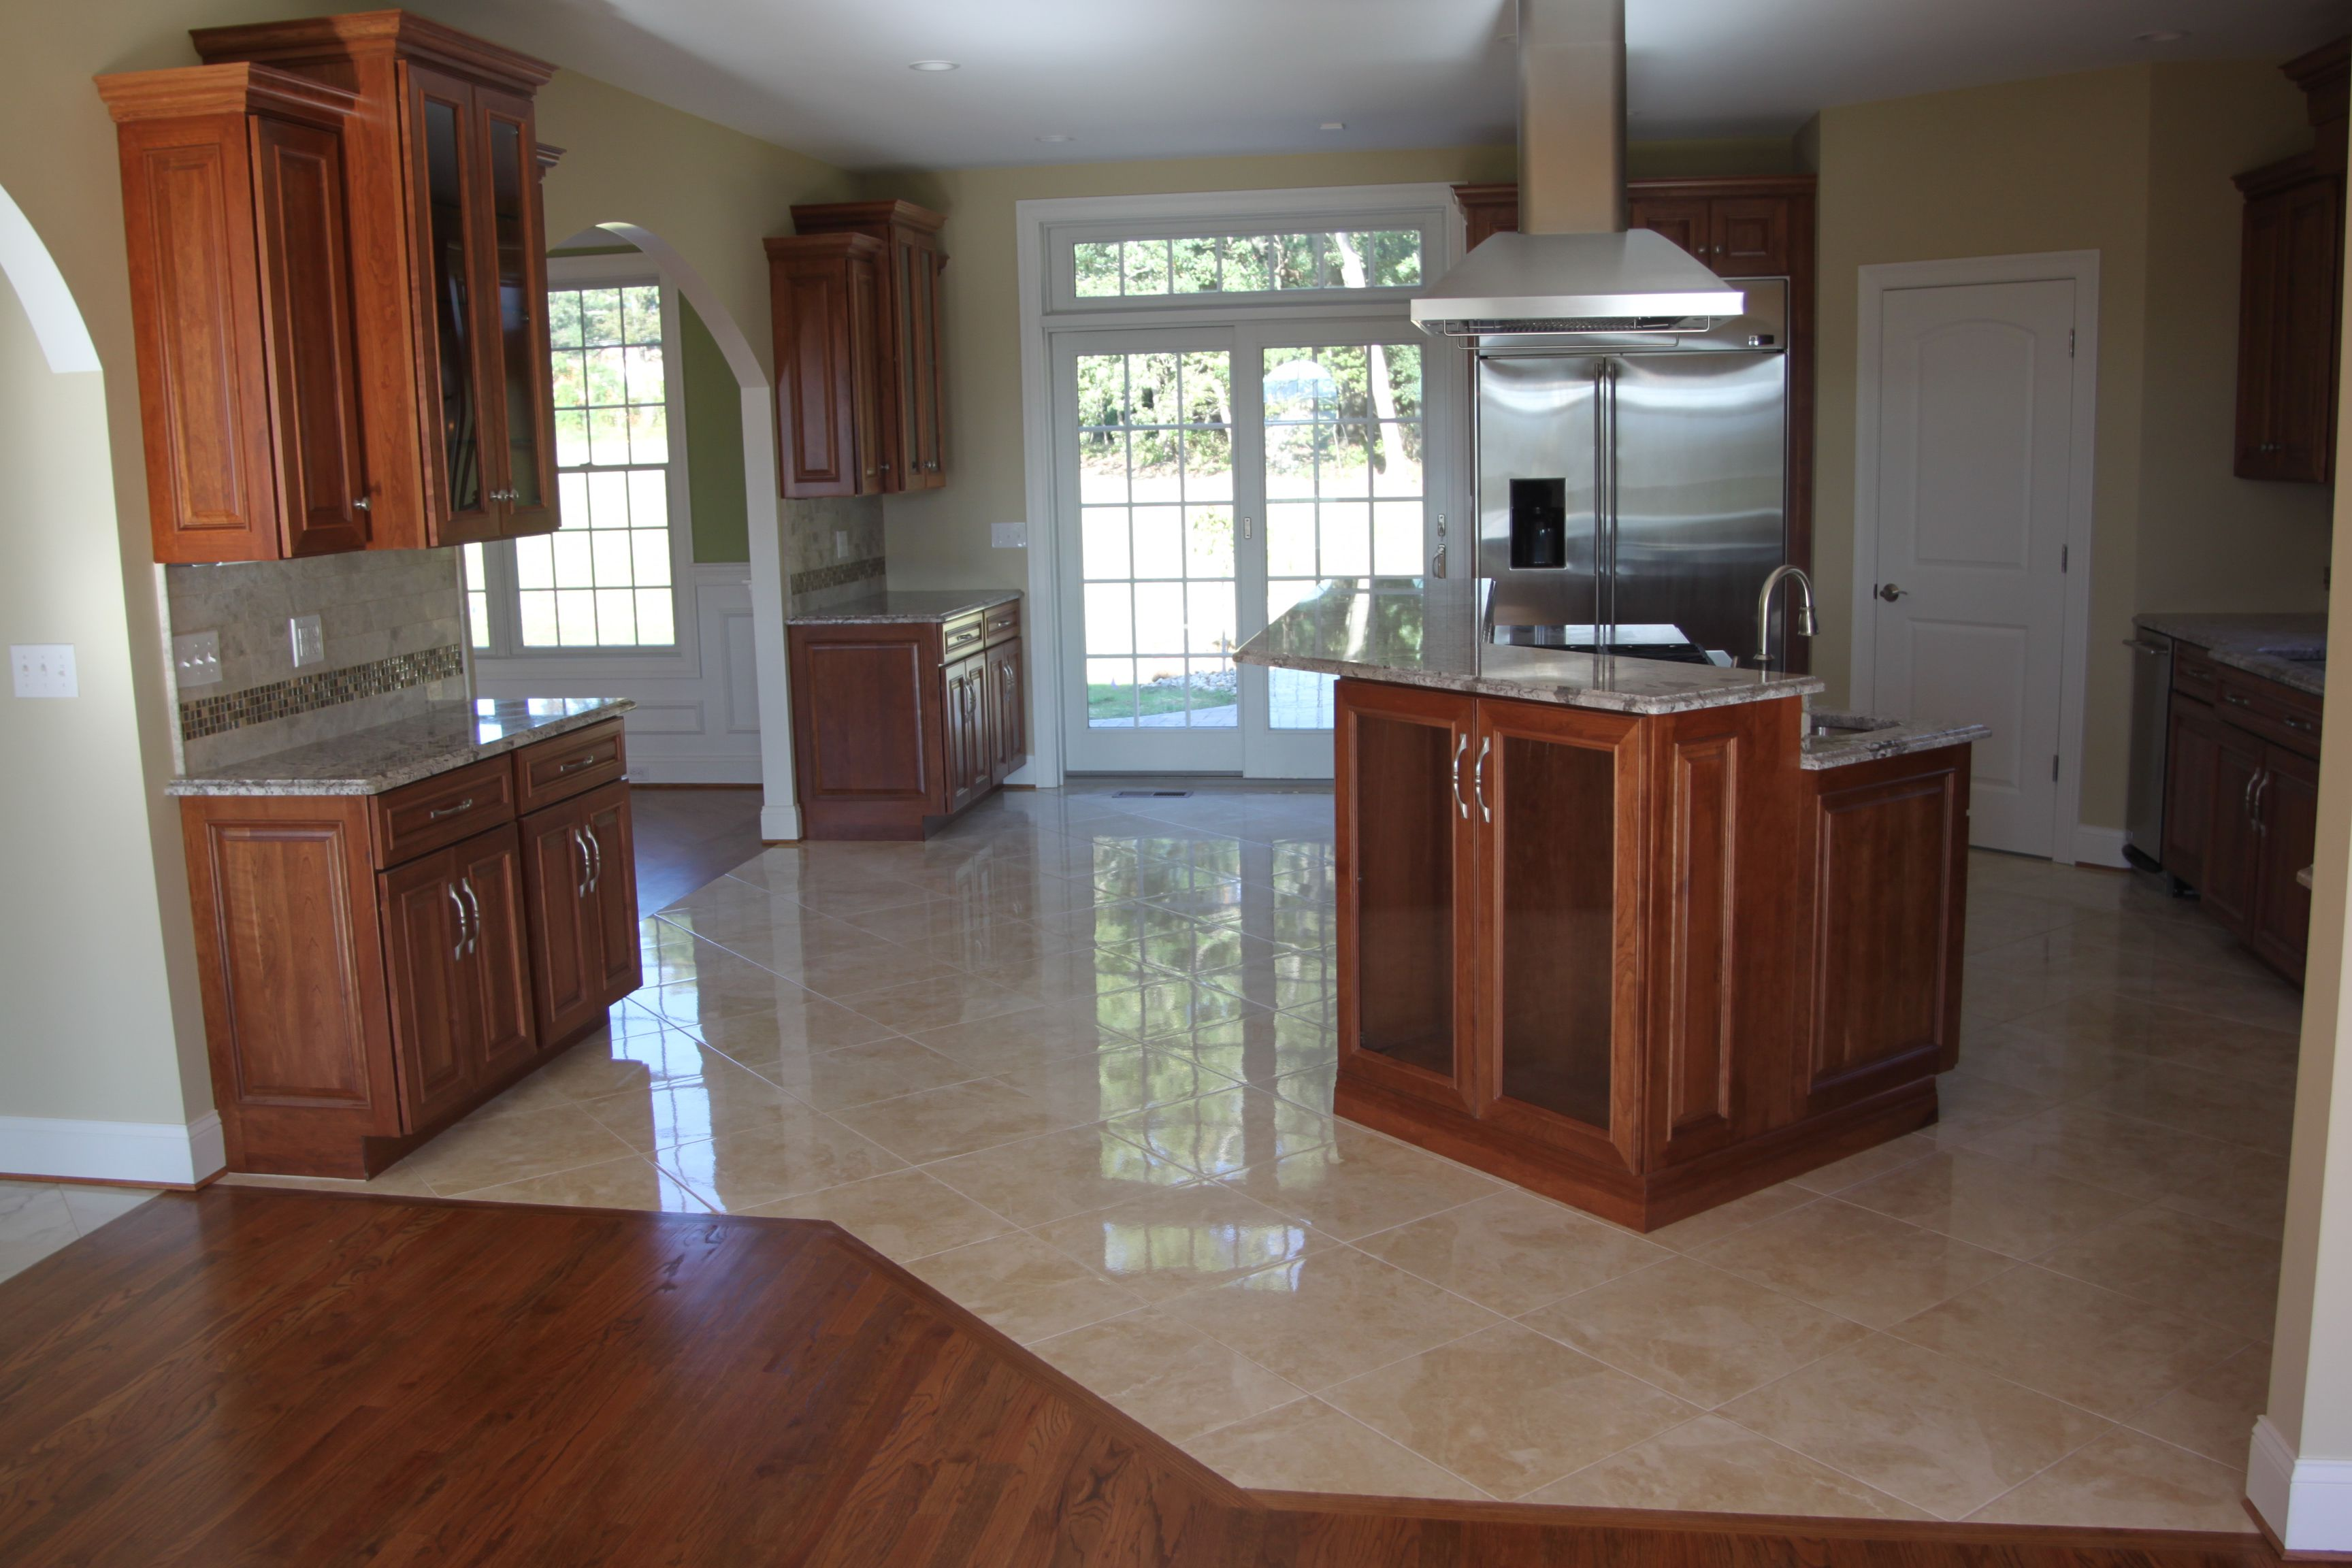 Spacious Kitchen With Granite Floor Tile also Brown Wooden Cabinet